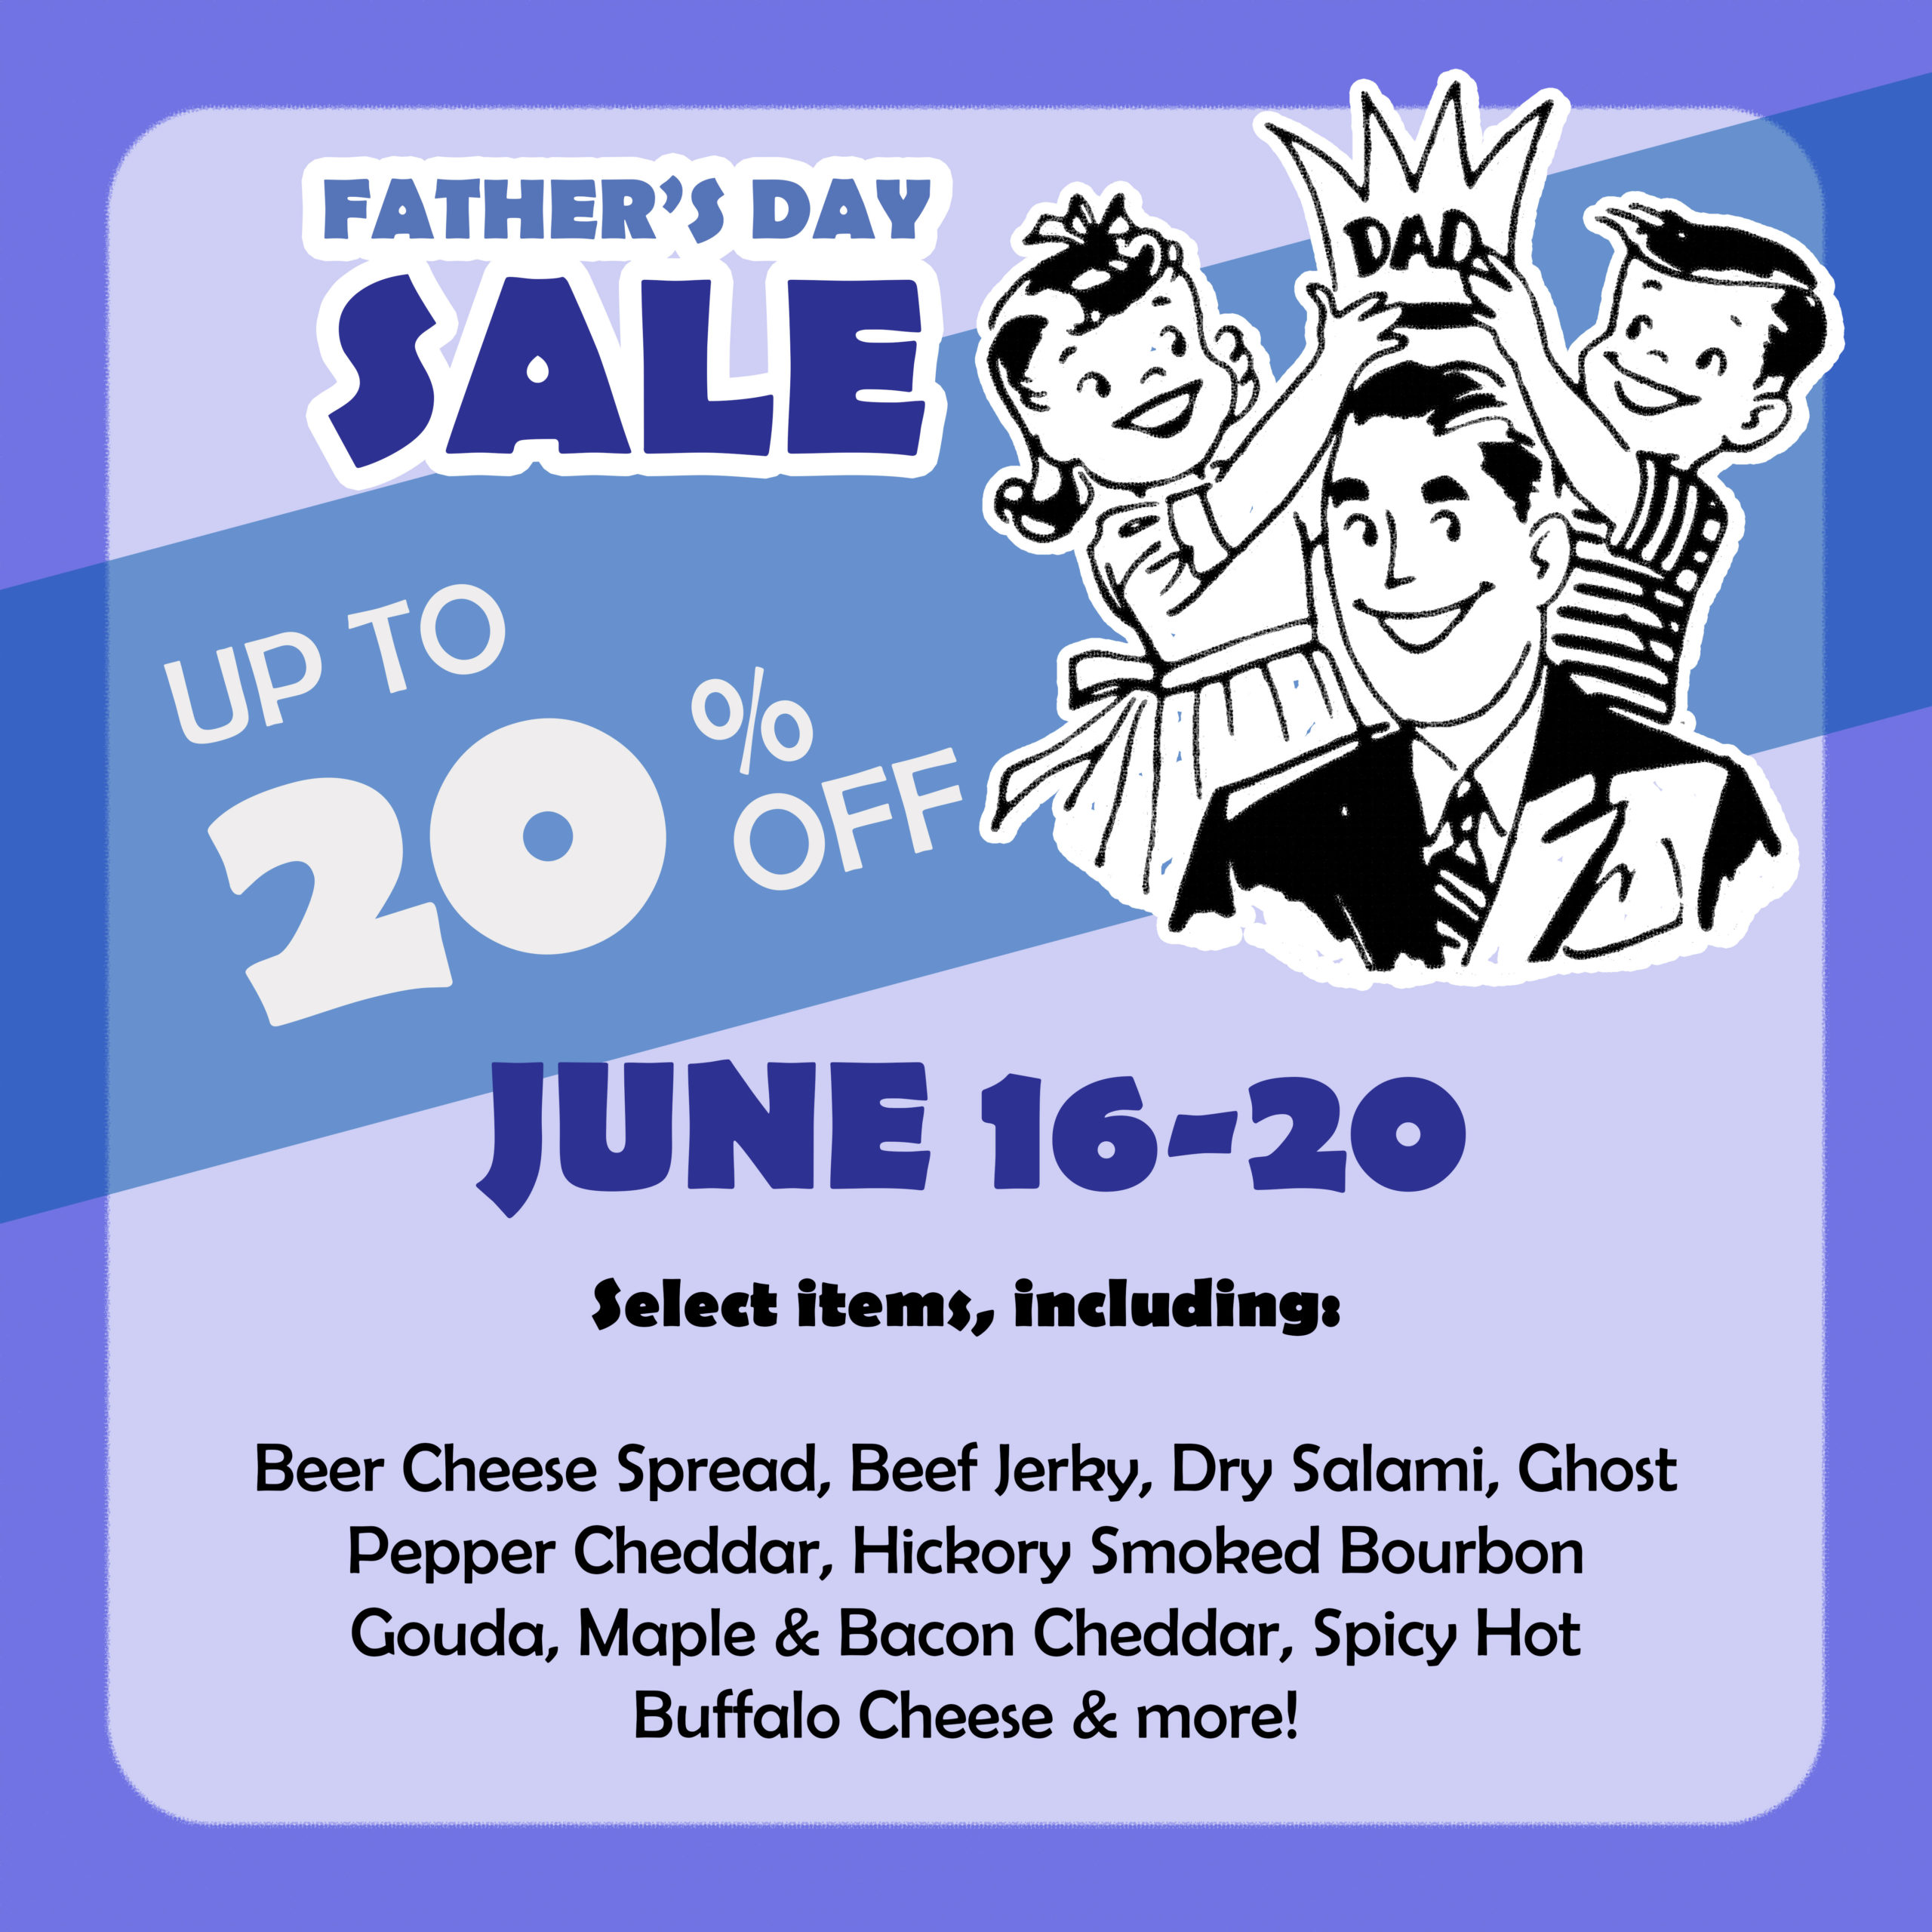 Father's Day Sale, June 16-20; save up to 20% on qualifying items.